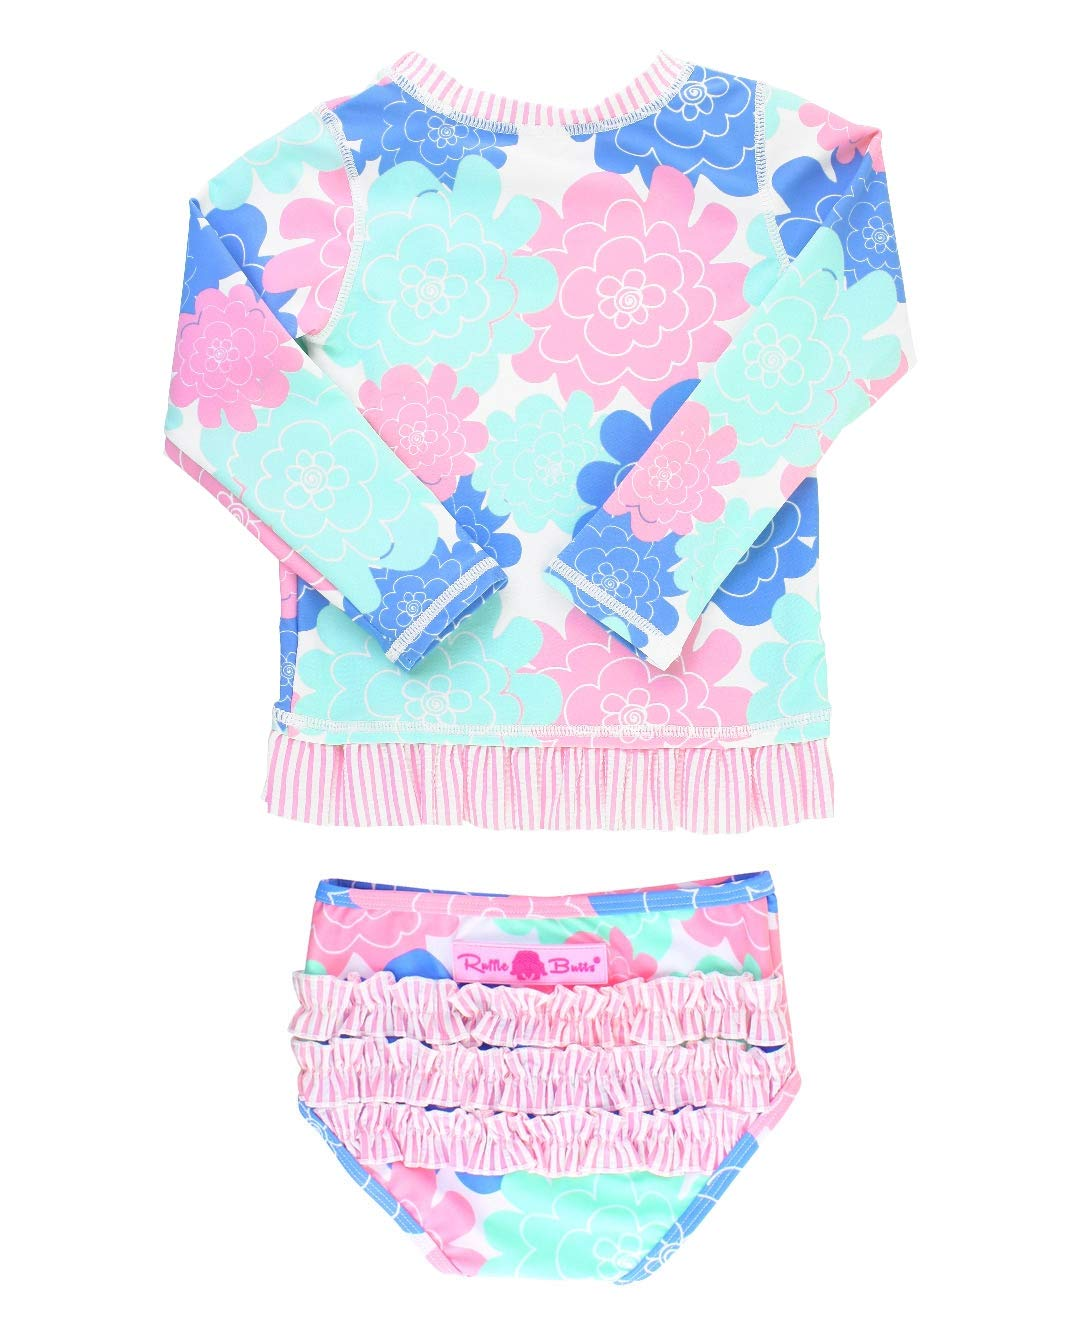 a2c5f080ca7be RuffleButts Little Girls Rash Guard 2-Piece Swimsuit Set - Long Sleeve  Bikini with UPF